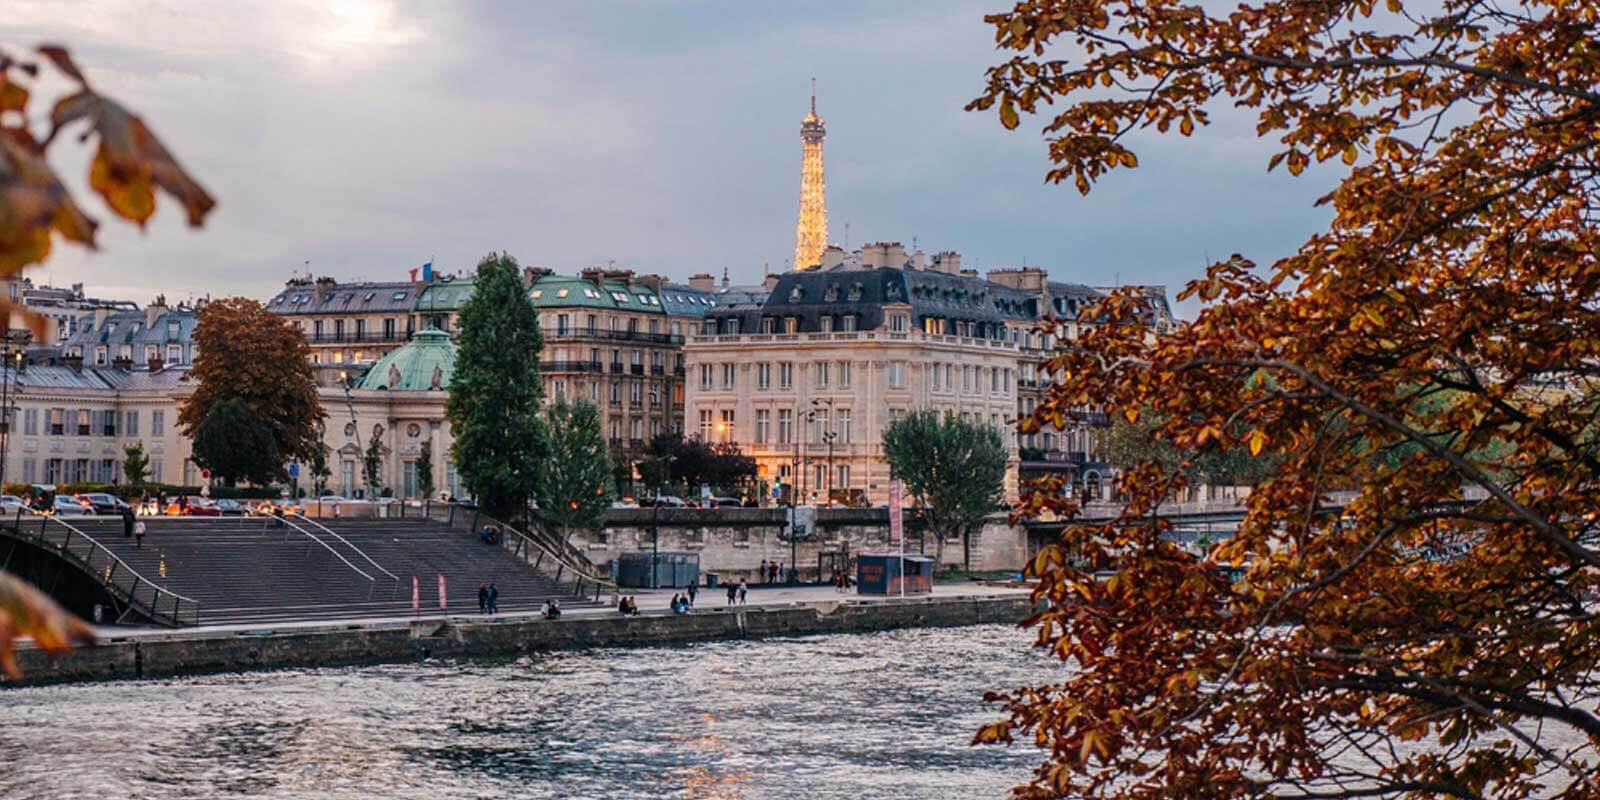 Landscape view of the Paris riverbank with the Eiffel Tower in the distance.